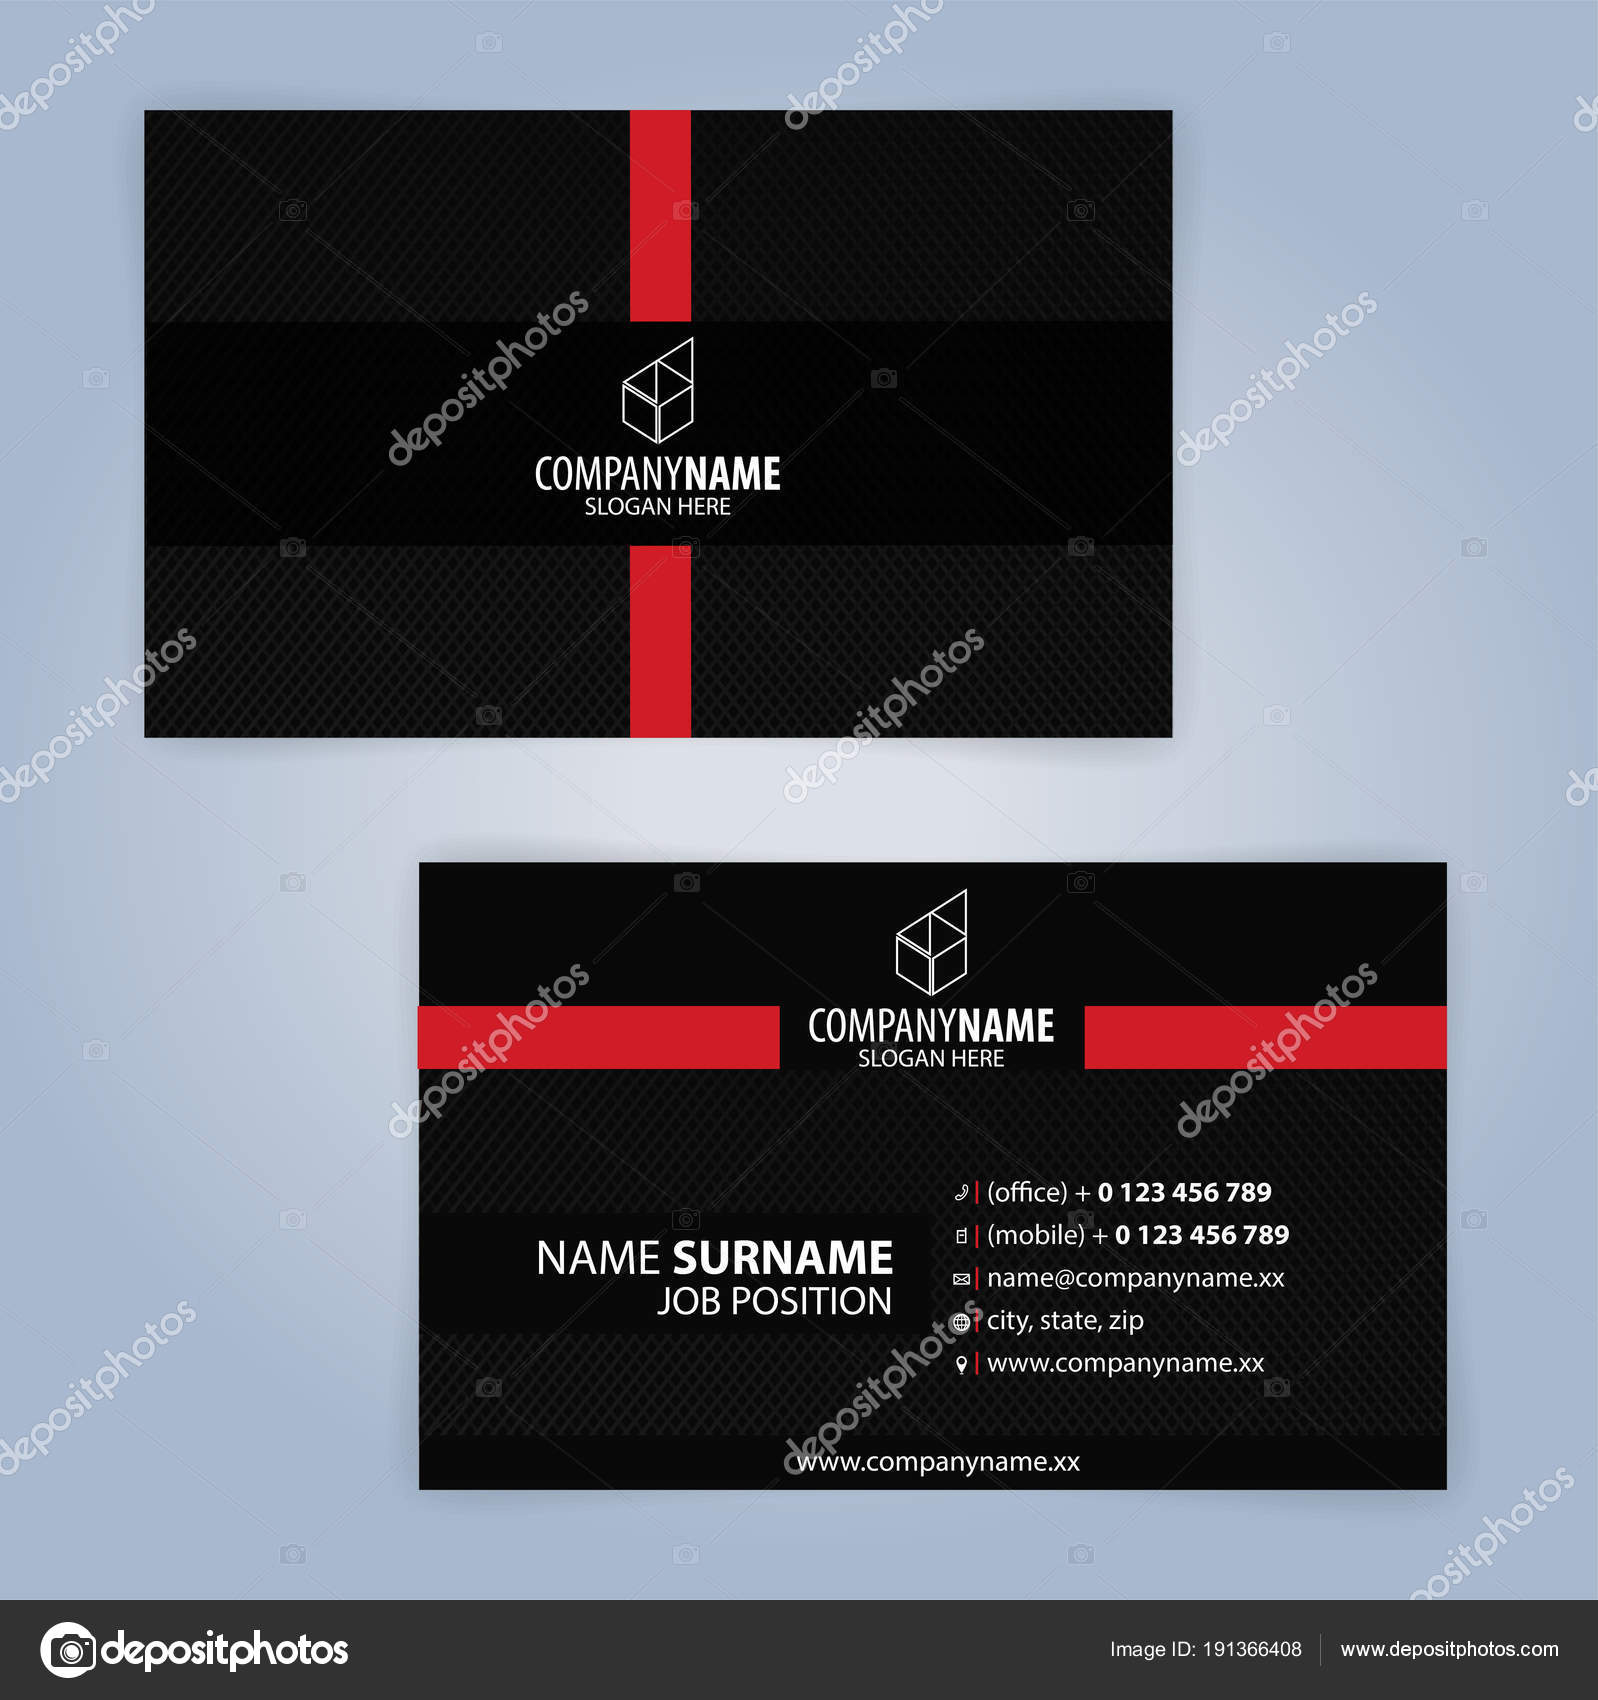 business card template red black illustration vector10 stock